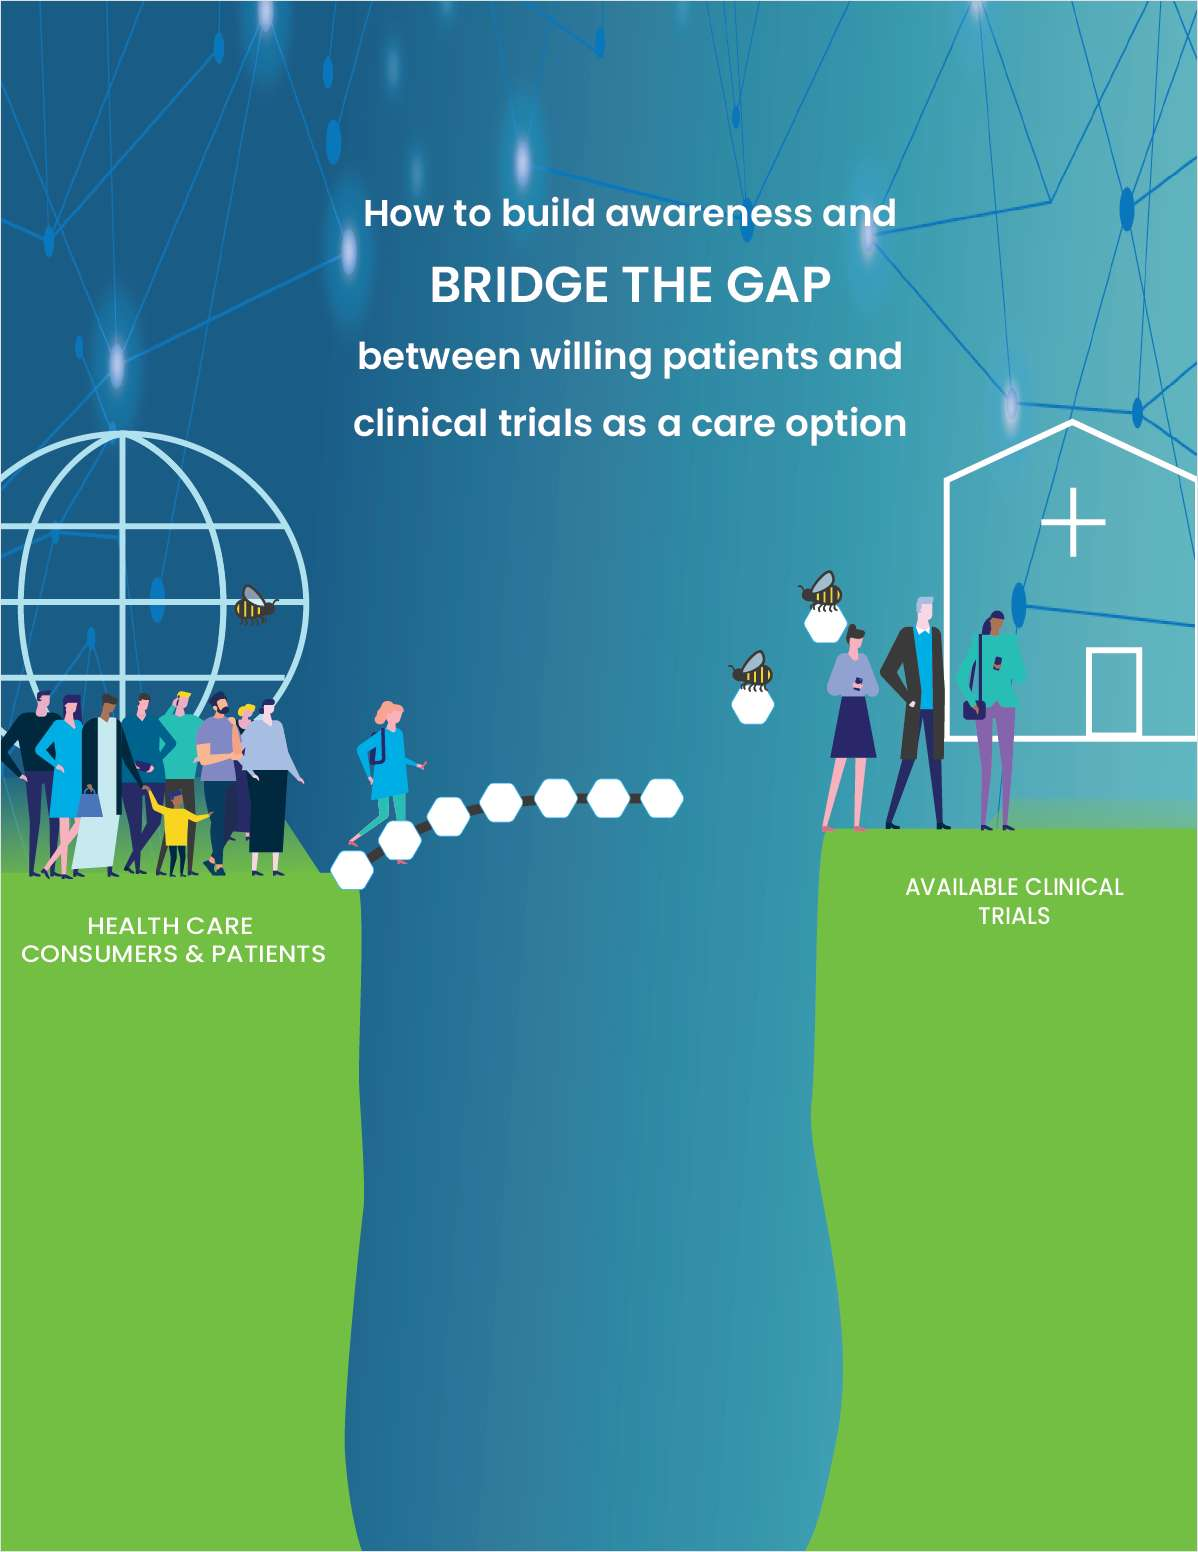 How to build awareness and BRIDGE THE GAP between willing patients and clinical trials as a care option